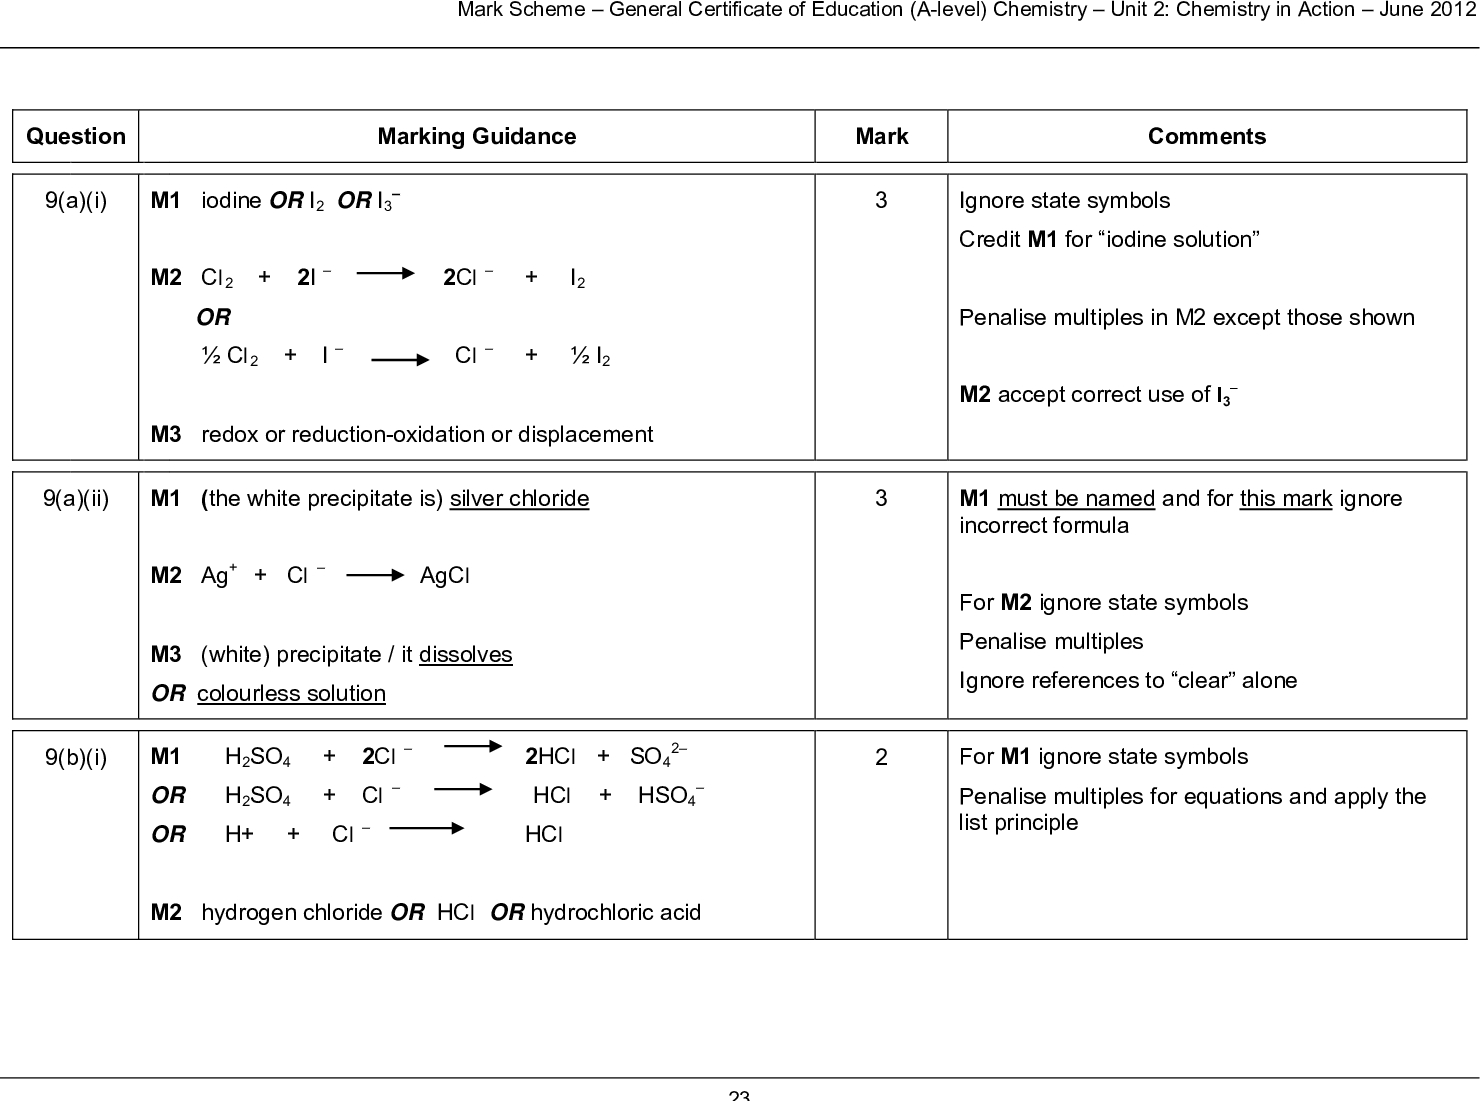 mark scheme general certificate of education a level chemistry unit chemistry in action june question marking guidance mark comments a i m iodine or i or i m cl i cl i or cl i cl i m redox or reduction oxidation or displacement a ii m the white precipitate is silver chloride m ag cl agcl m white precipitate it dissolves or colourless solution or h so cl hcl hso or m hydrogen chloride or hcl or hydrochloric acid h cl hcl b i m h so cl hcl so ignore state symbols credit m for iodine solution penalise multiples in m except those shown m accept correct use of i m must be named and for this mark ignore incorrect formula for m ignore state symbols penalise multiples ignore references to clear alone for m ignore state symbols penalise multiples for equations and apply the list principle mark scheme general certificate of education a level chemistry unit chemistry in action june b ii m and m in either order or m i i e i i e m h so h e h s h o or so m or electron acceptor m sulfur or s or s or s or sulphur h e h s h o oxidising agent oxidises the iodide ions for m and m ignore state symbols and credit multiples do not penalise absence of charge on the electron credit electrons shown correctly on the other side of each equation additional equations should not contradict mark scheme general certificate of education a level chemistry unit chemistry in action june ignore reference to naoh reacting with bromide ions ignore reference to naoh reacting with hbro alone in m answers must refer to the position of equilibrium shifts moves and is not enough to state simply that it the system the reaction shifts to oppose the change b iii m the naoh oh sodium hydroxide reacts with neutralises the h acid hbr lowering its concentration or a correct neutralisation equation for h or hbr with naoh or with hydroxide ion m requires a correct statement for m the position of equilibrium moves shifts from l to r to replace the h acid hbr that has been removed lost or to increase the h acid hbr concentration or to make more h acid hbr product s or to oppose the loss of h loss of product s or to oppose the decrease in concentration of product s m the health benefit outweighs the risk or wtte or a clear statement that once it has done its job little of it remains or used in very dilute concentrations small amounts low doses